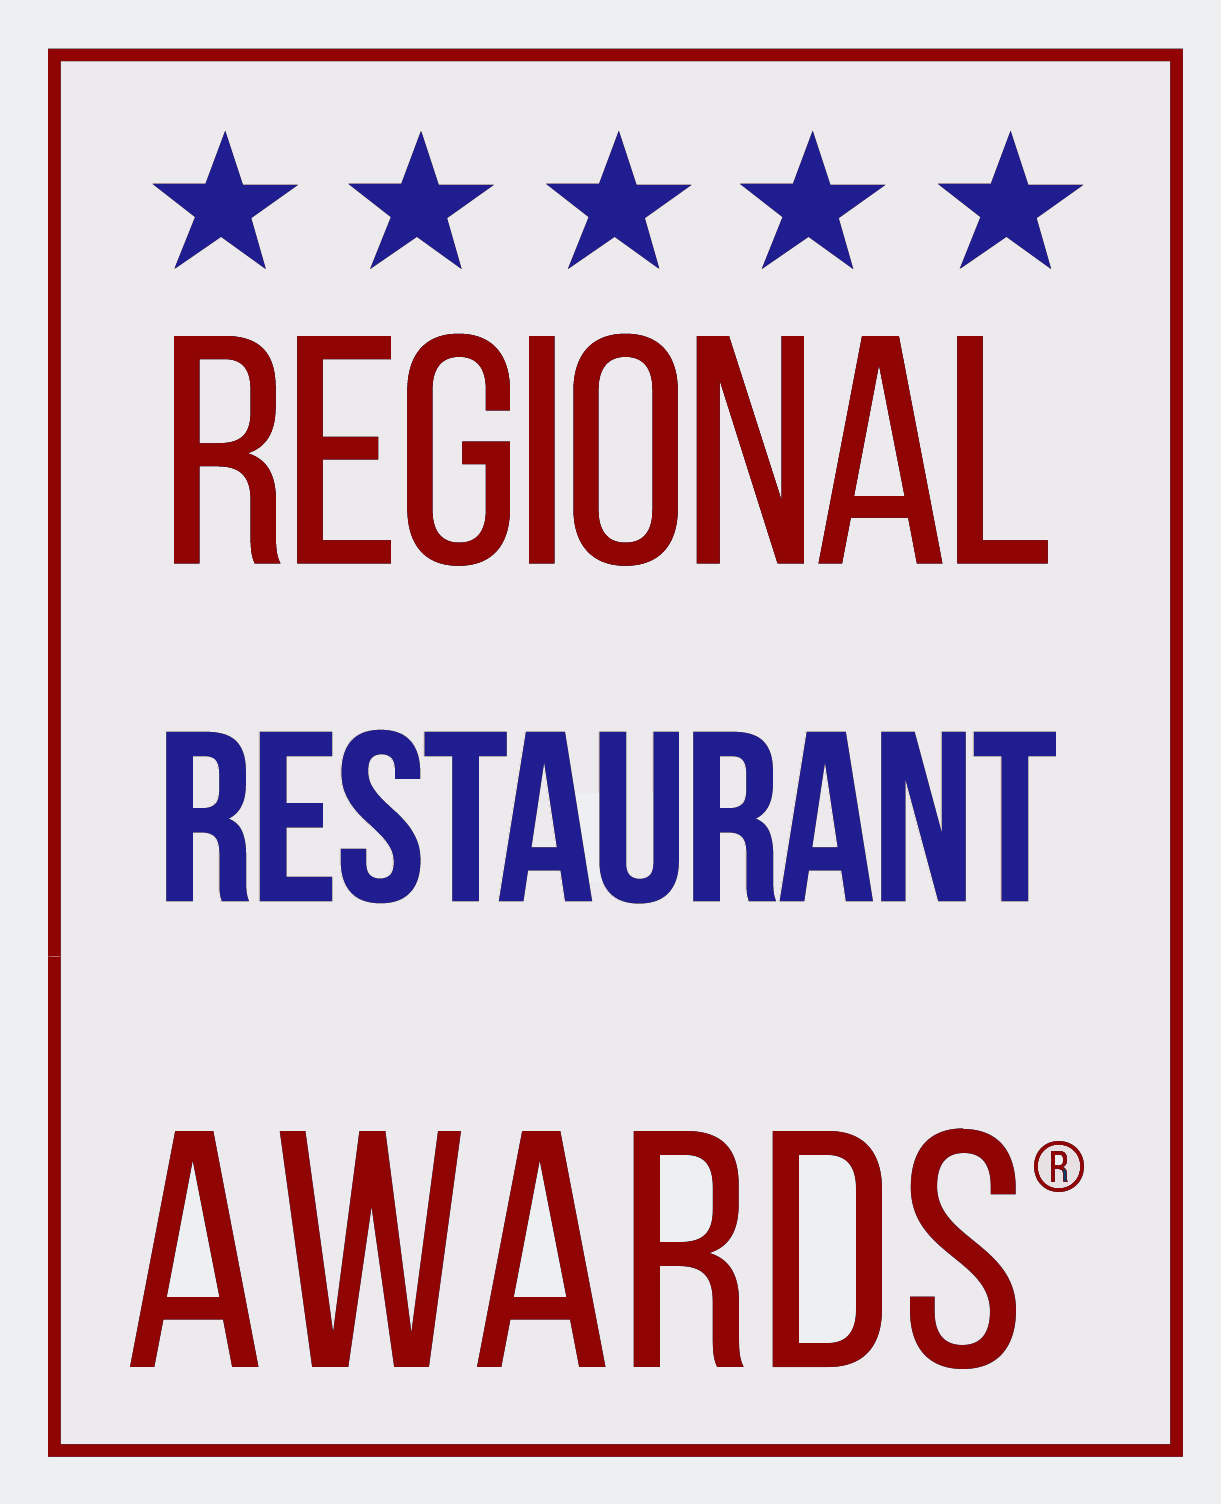 Regional Restaurant Awards